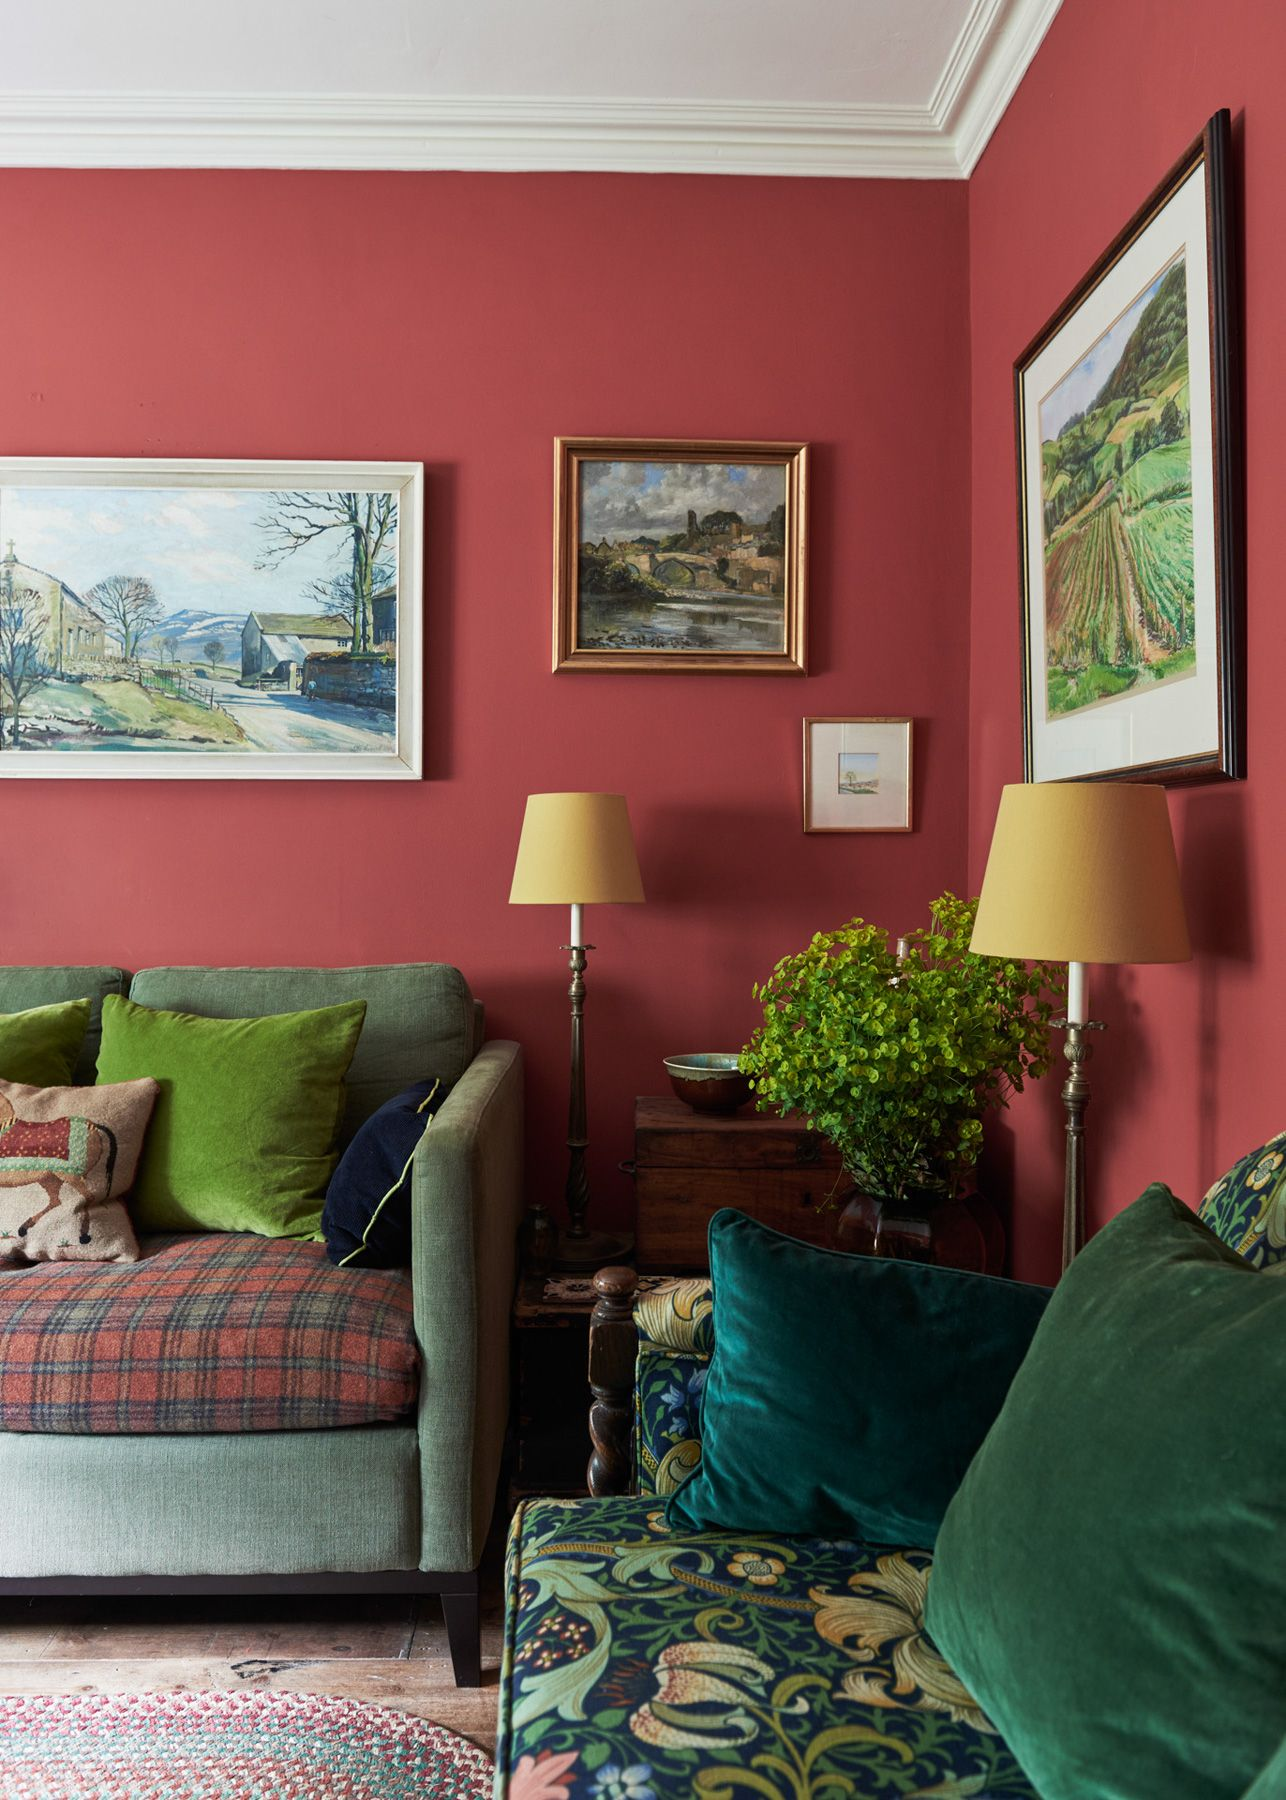 Farrow And Ball Blazer Red Walls In Sitting Room Designed By Bretton Studios